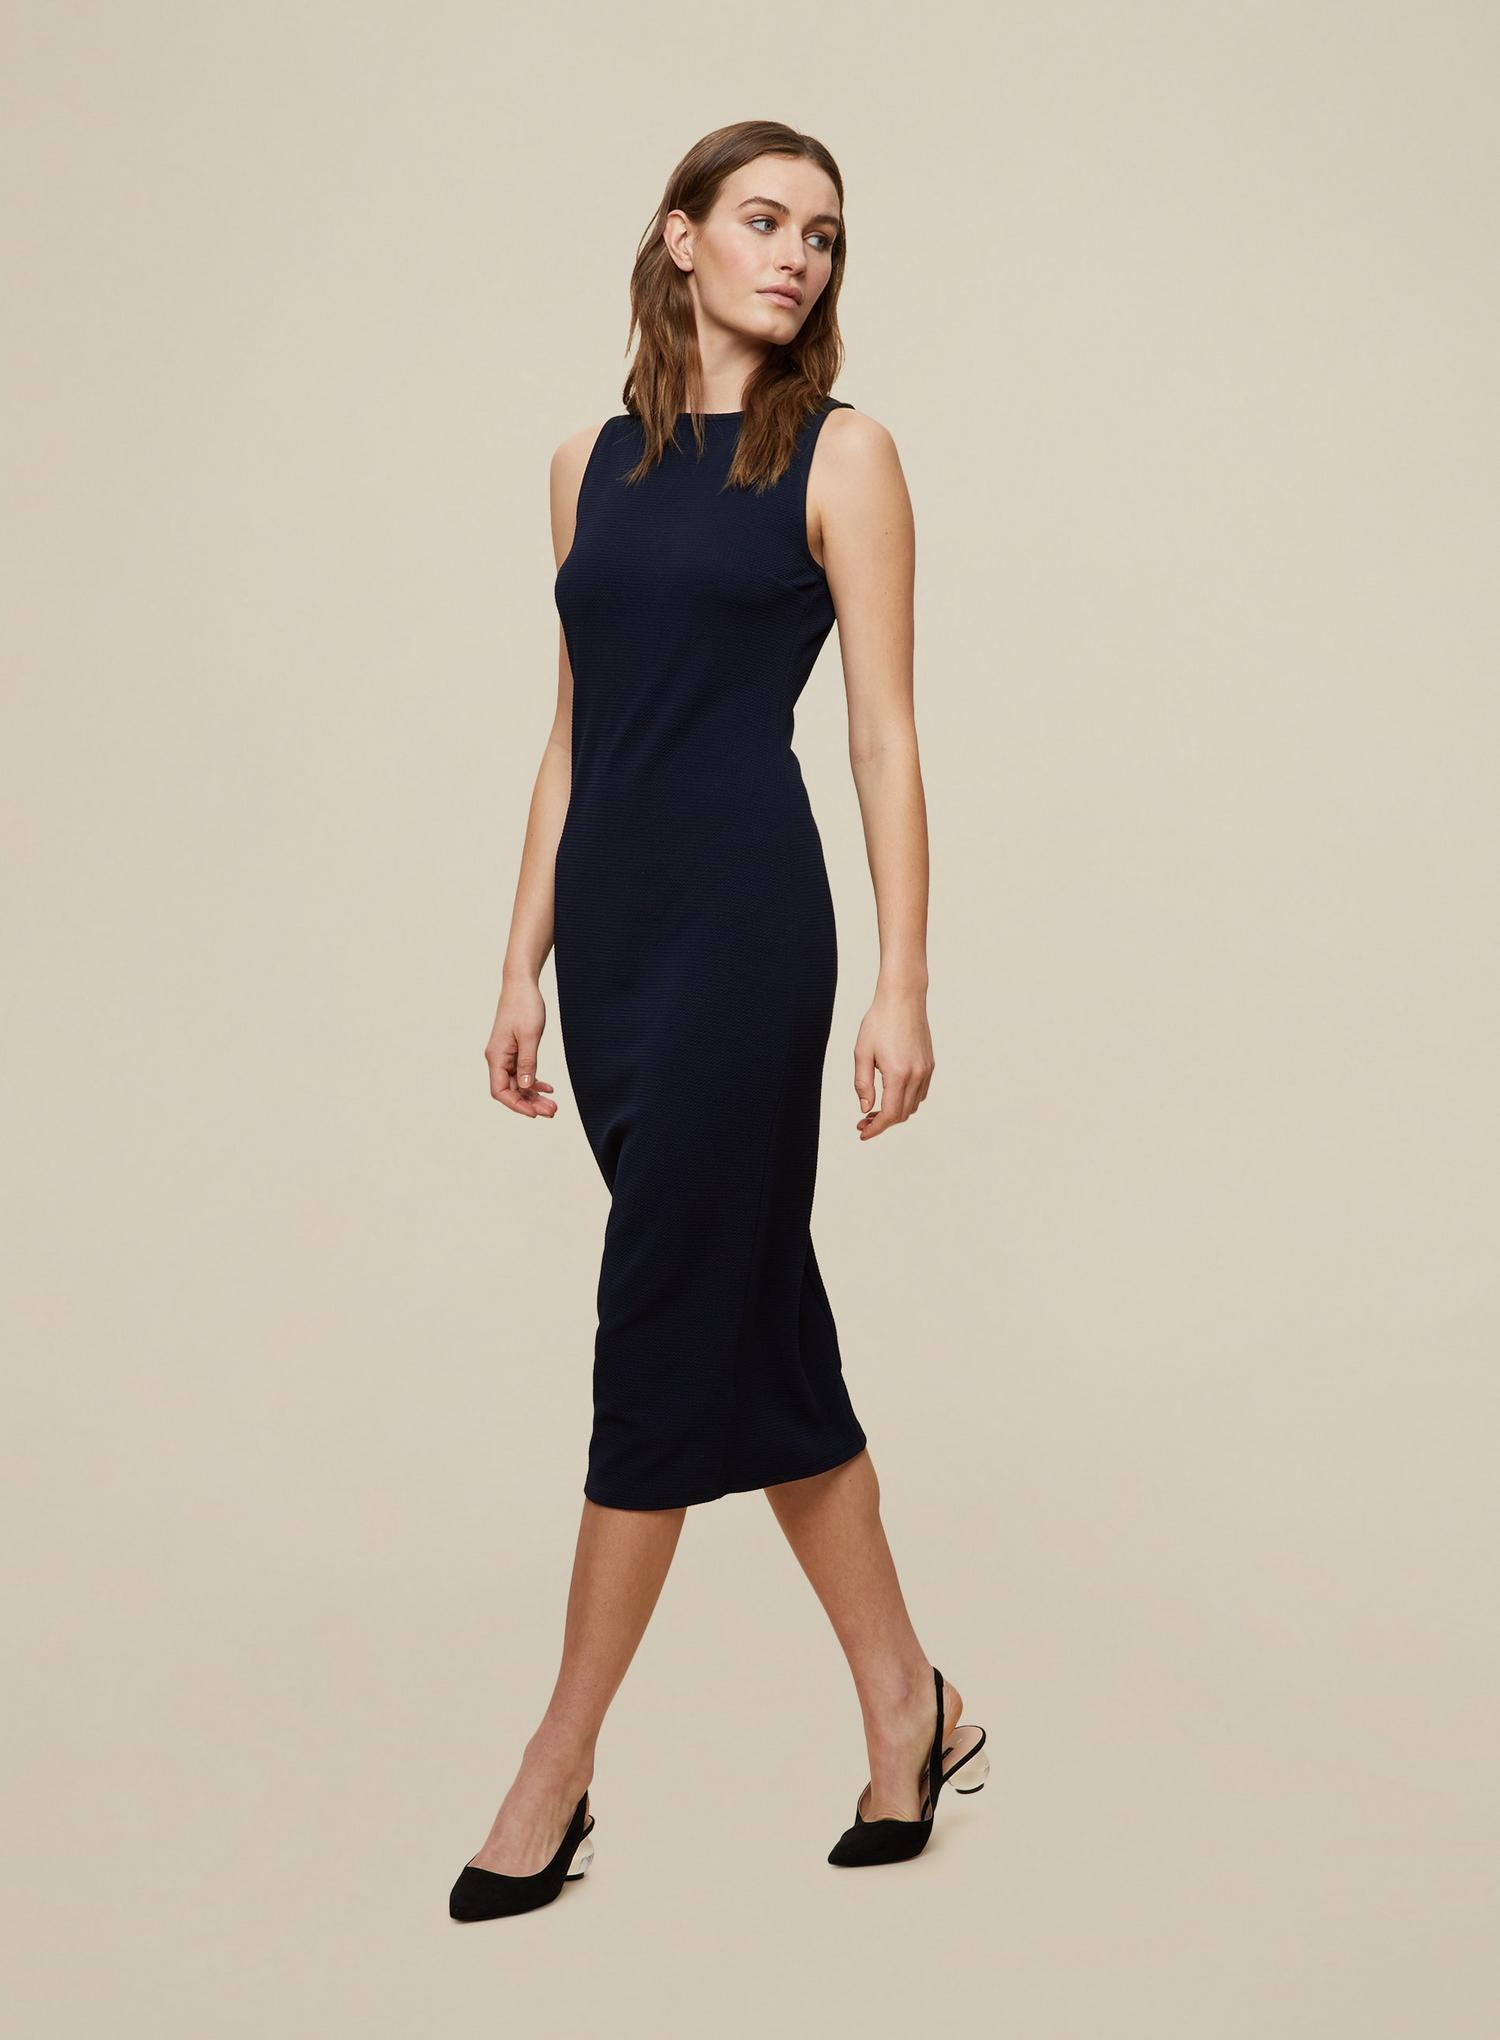 148 Navy Sleeveless Bodycon Dress image number 4